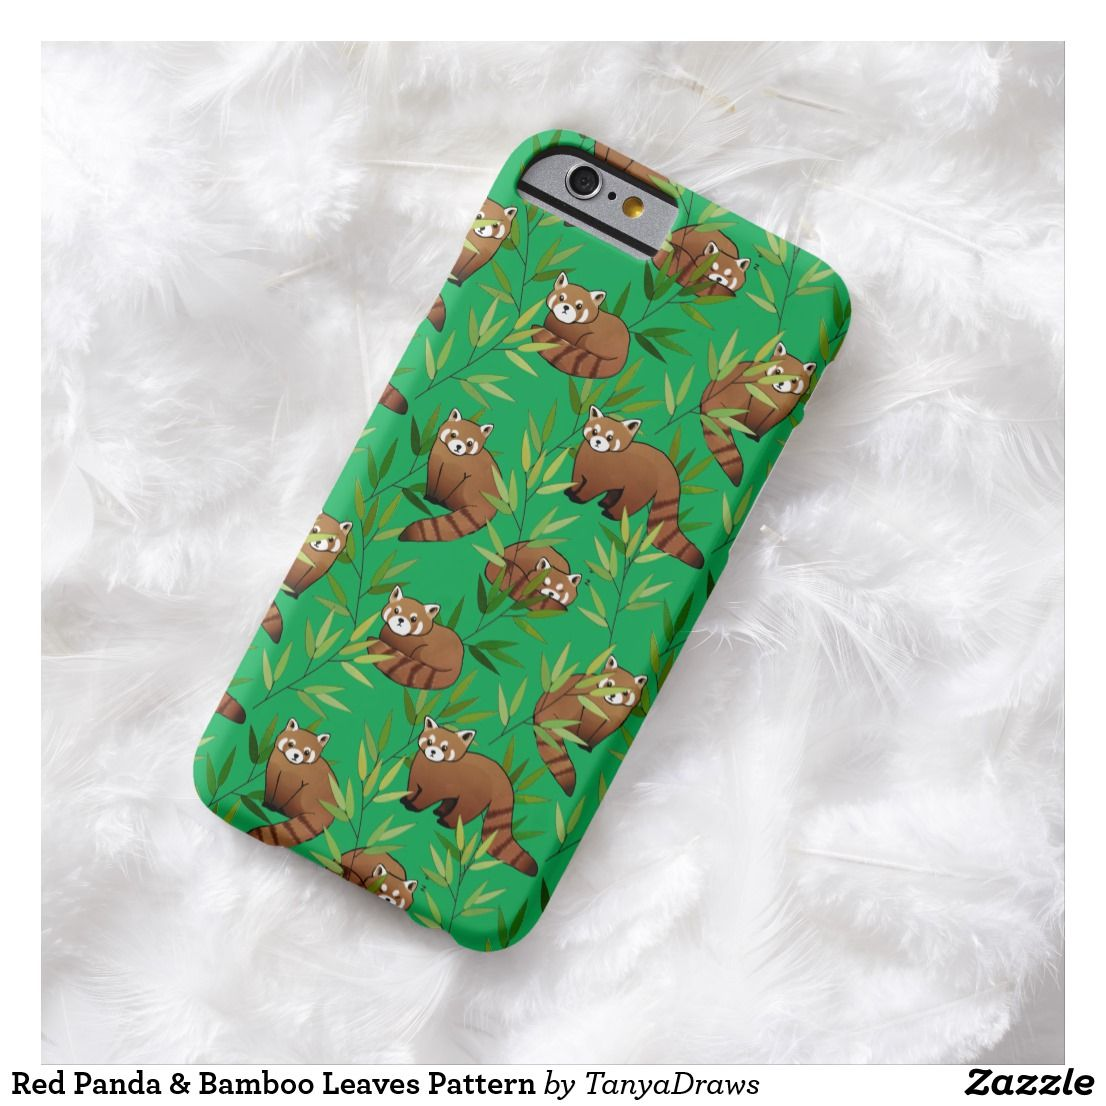 Red Panda & Bamboo Leaves Pattern Barely There iPhone 6 Case from Zazzle